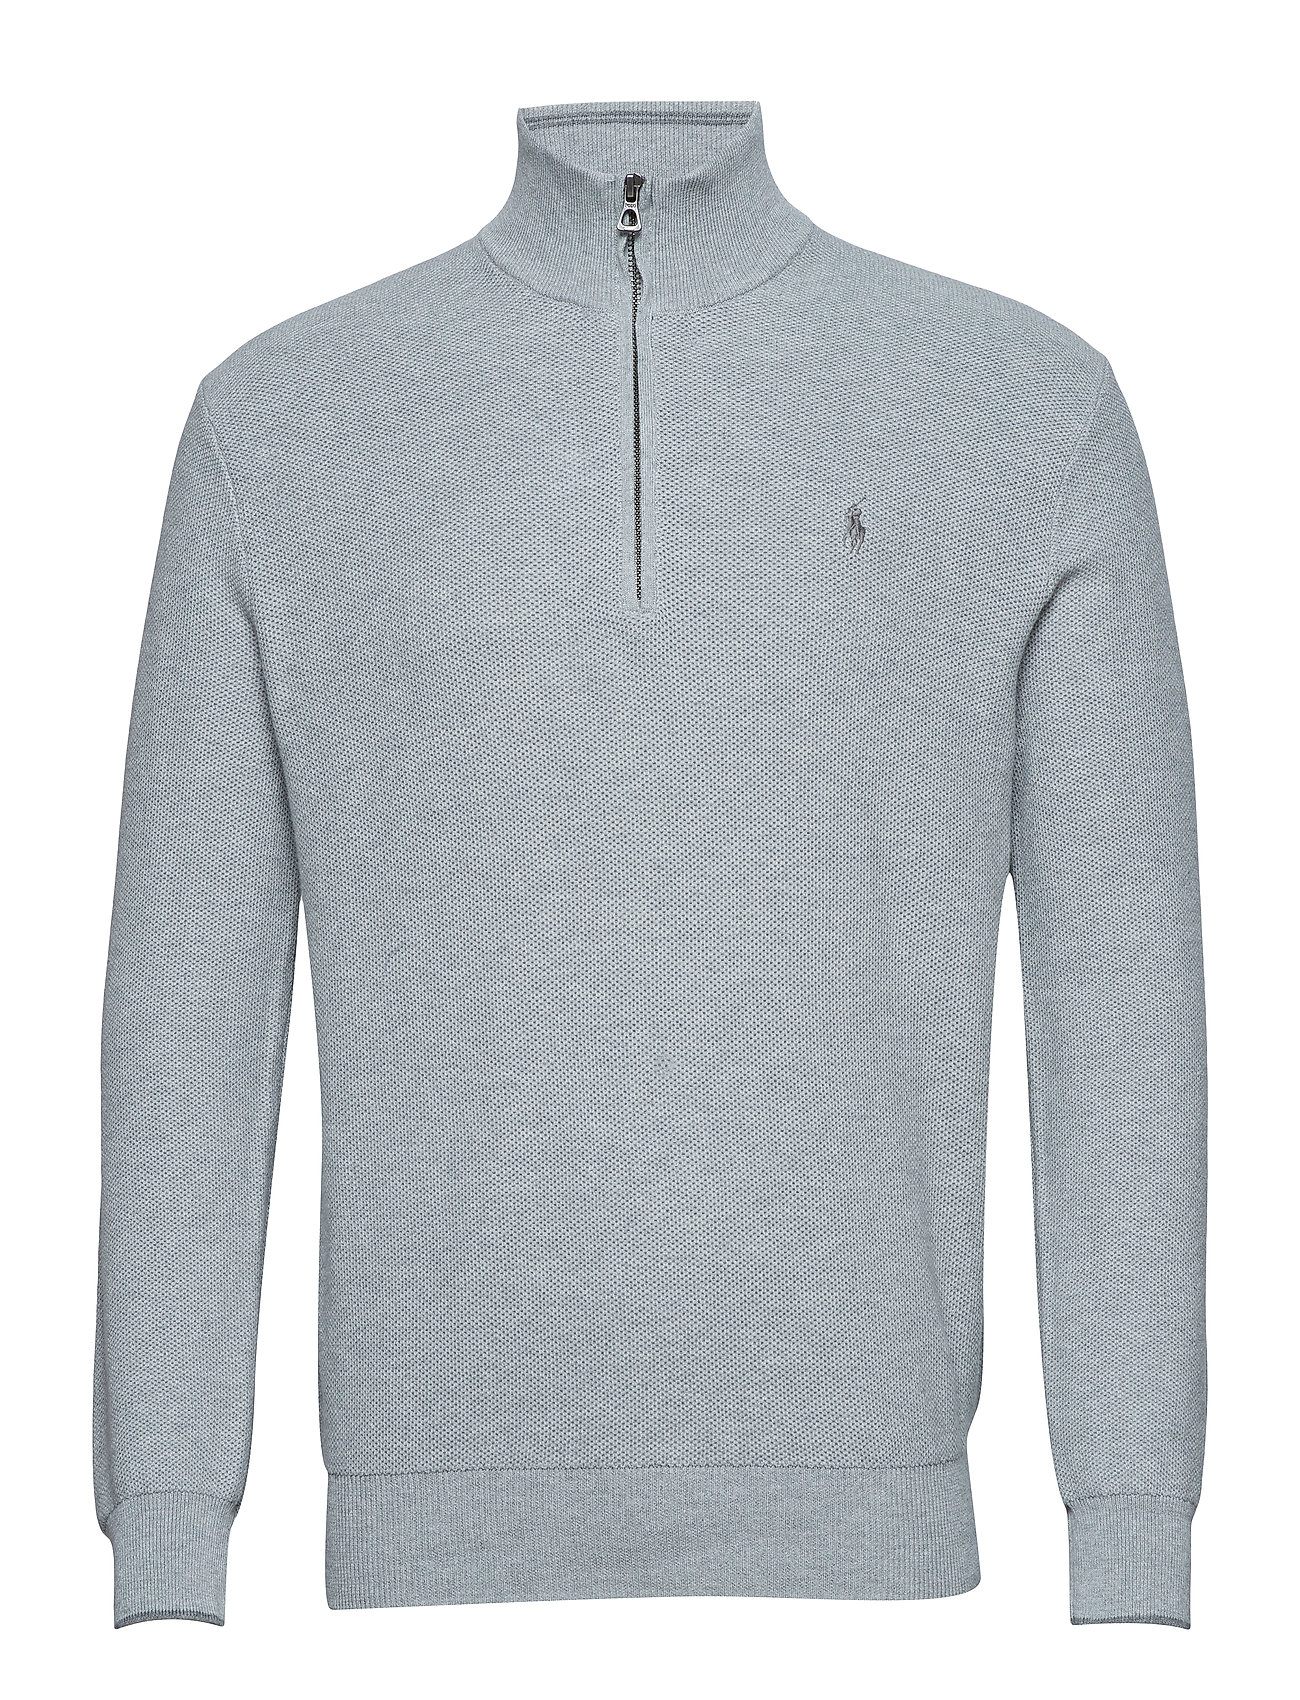 Polo Ralph Lauren Cotton Half-Zip Sweater - ANDOVER HEATHER